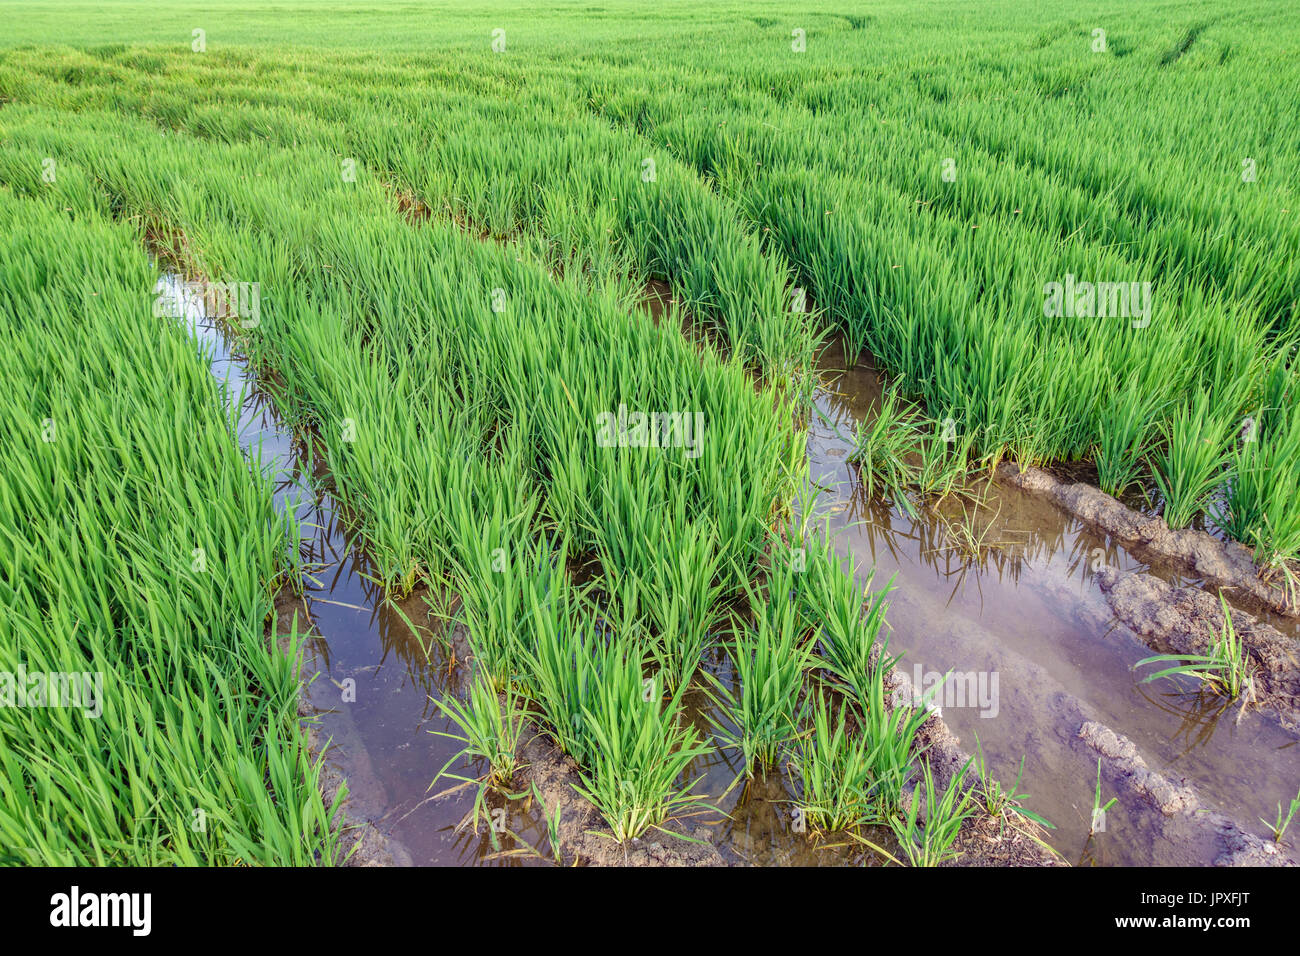 Horchata plantation in Valencia Albufera with tire ruts Stock Photo